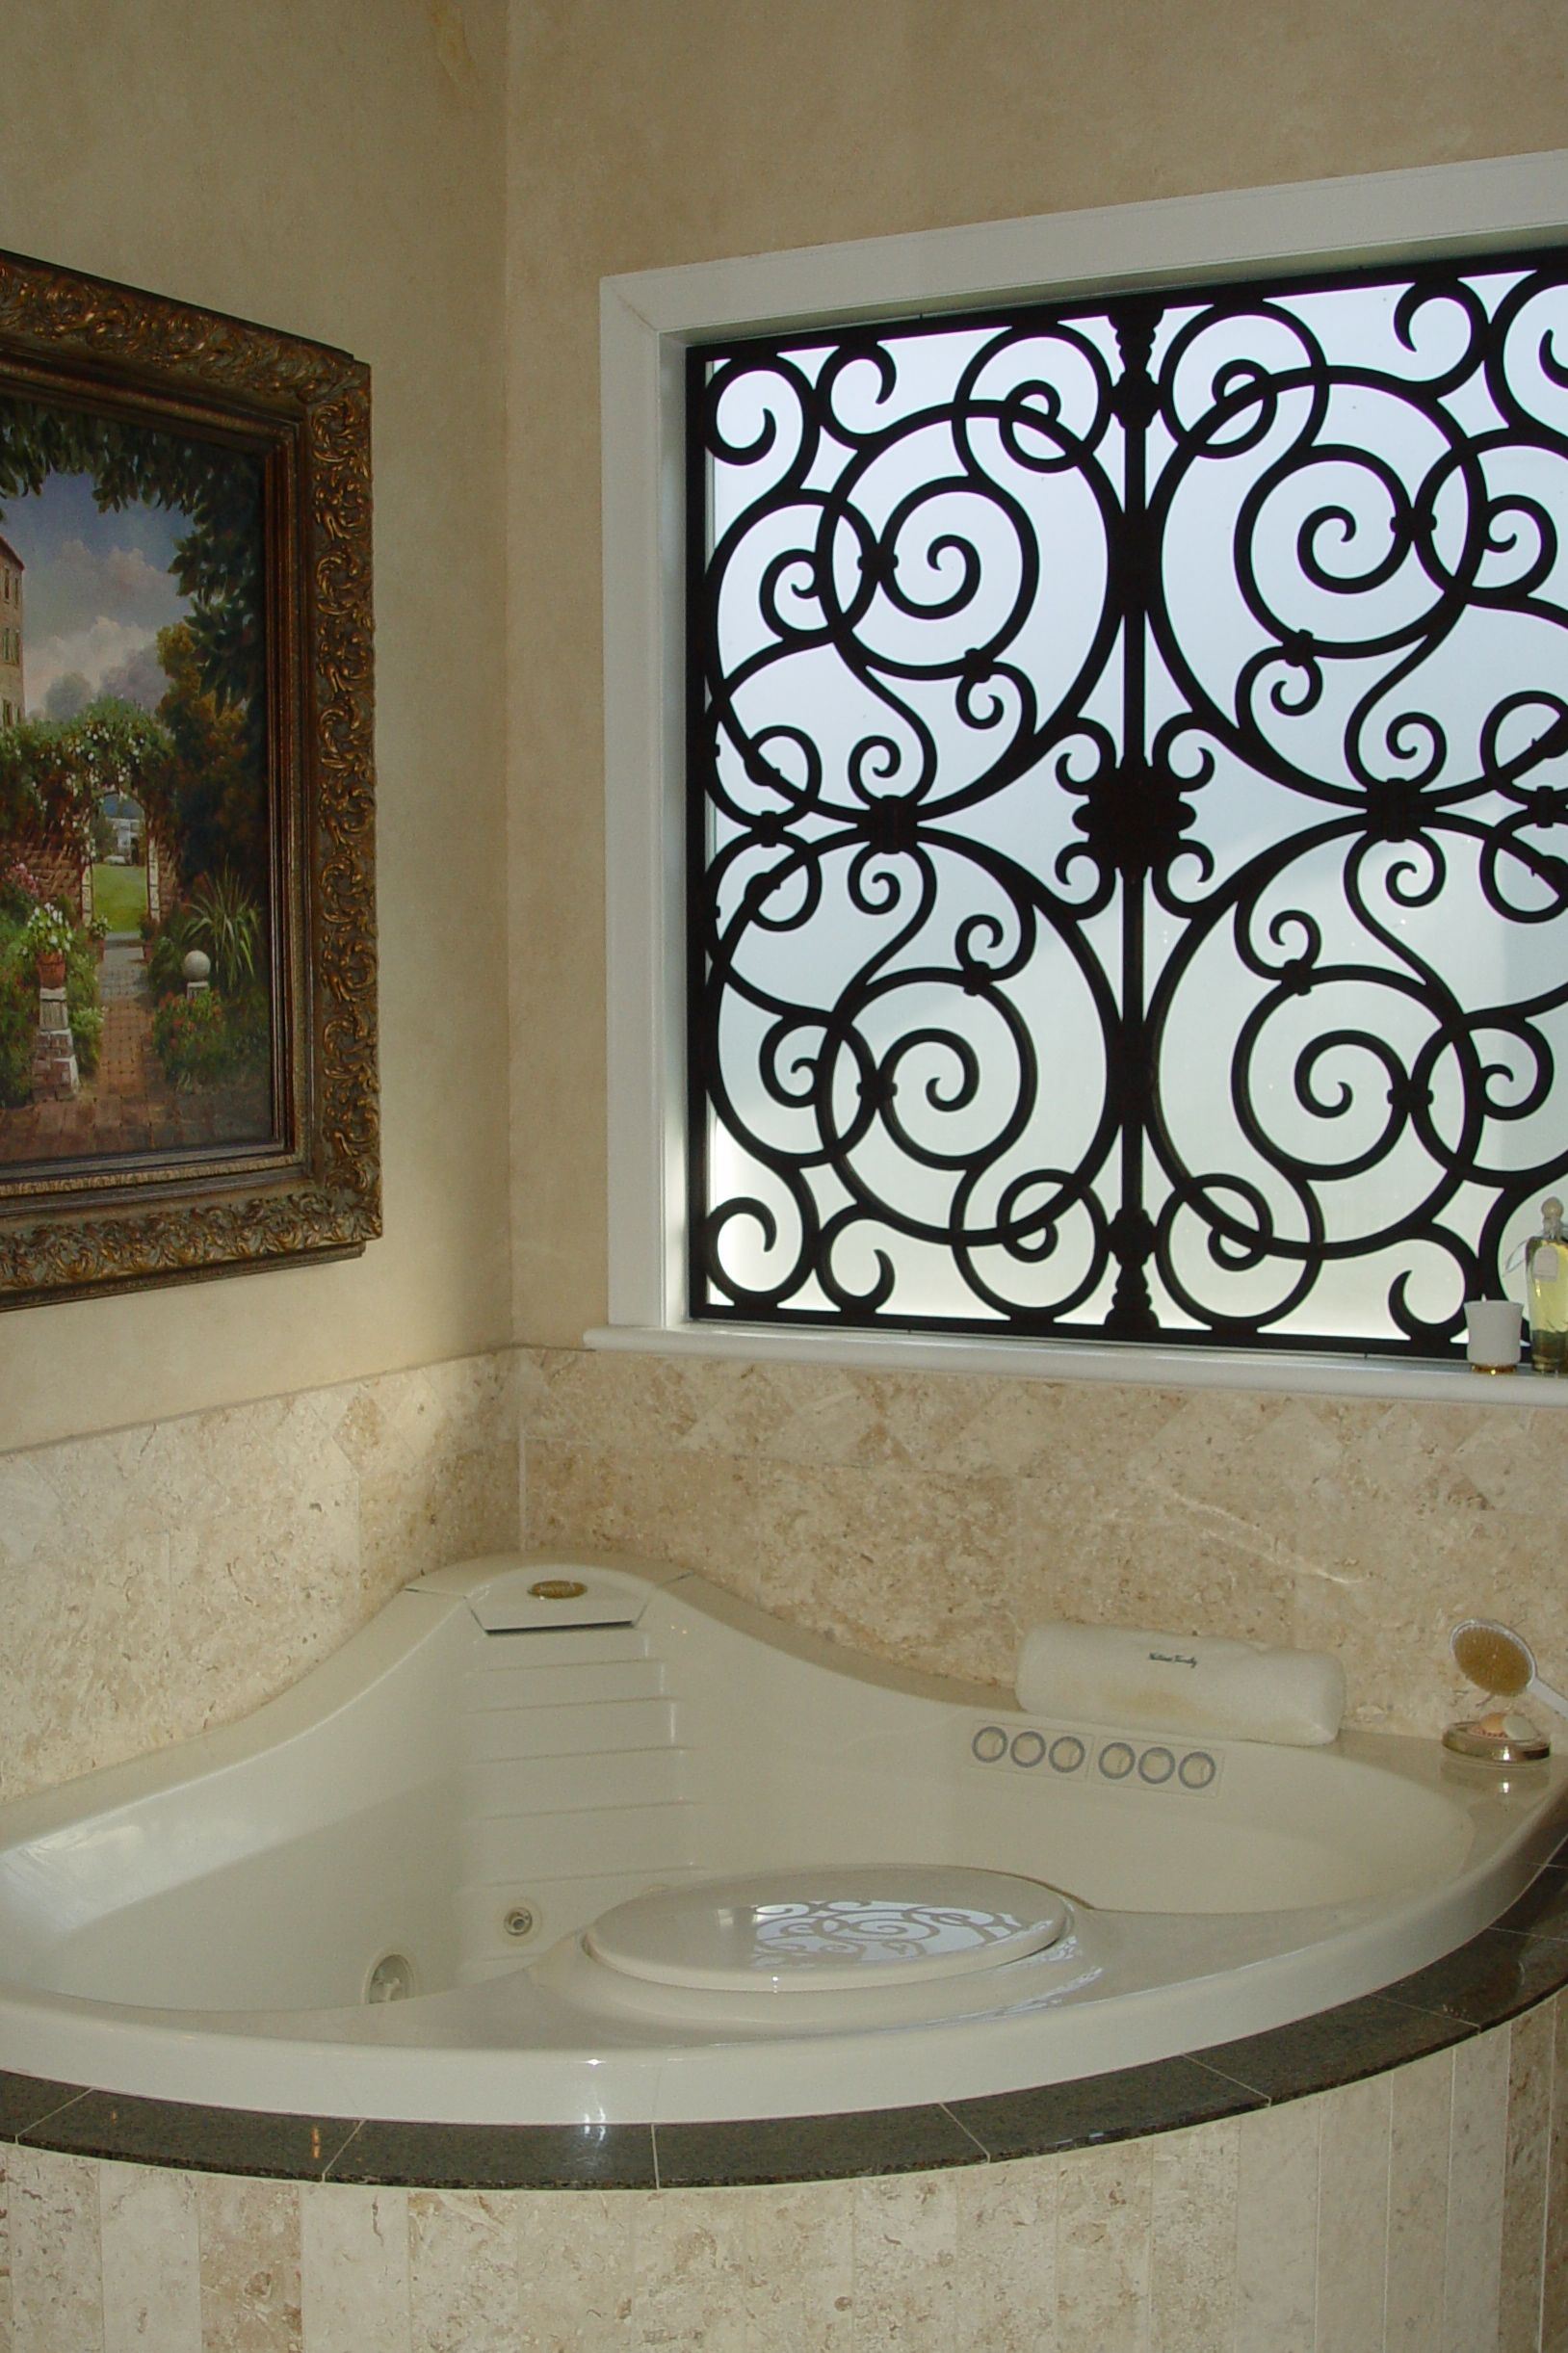 Tableaux On This Frosted Tub Window Made A Huge Difference